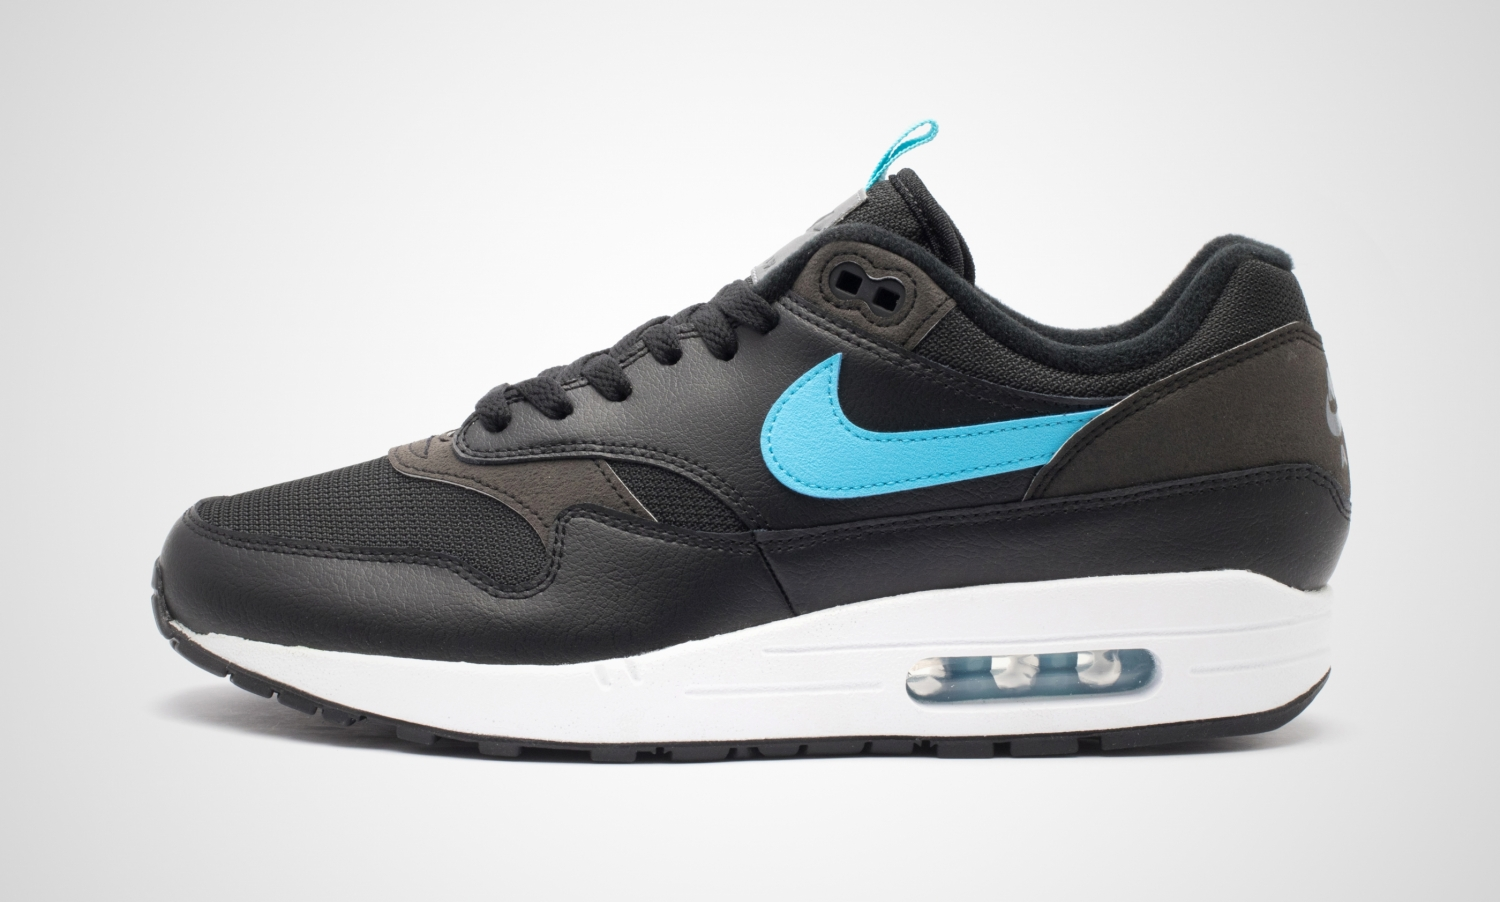 timeless design 72b0d aa493 nike-air max 1-herren-schwarz-cd1530 001-schwarze-sneakers